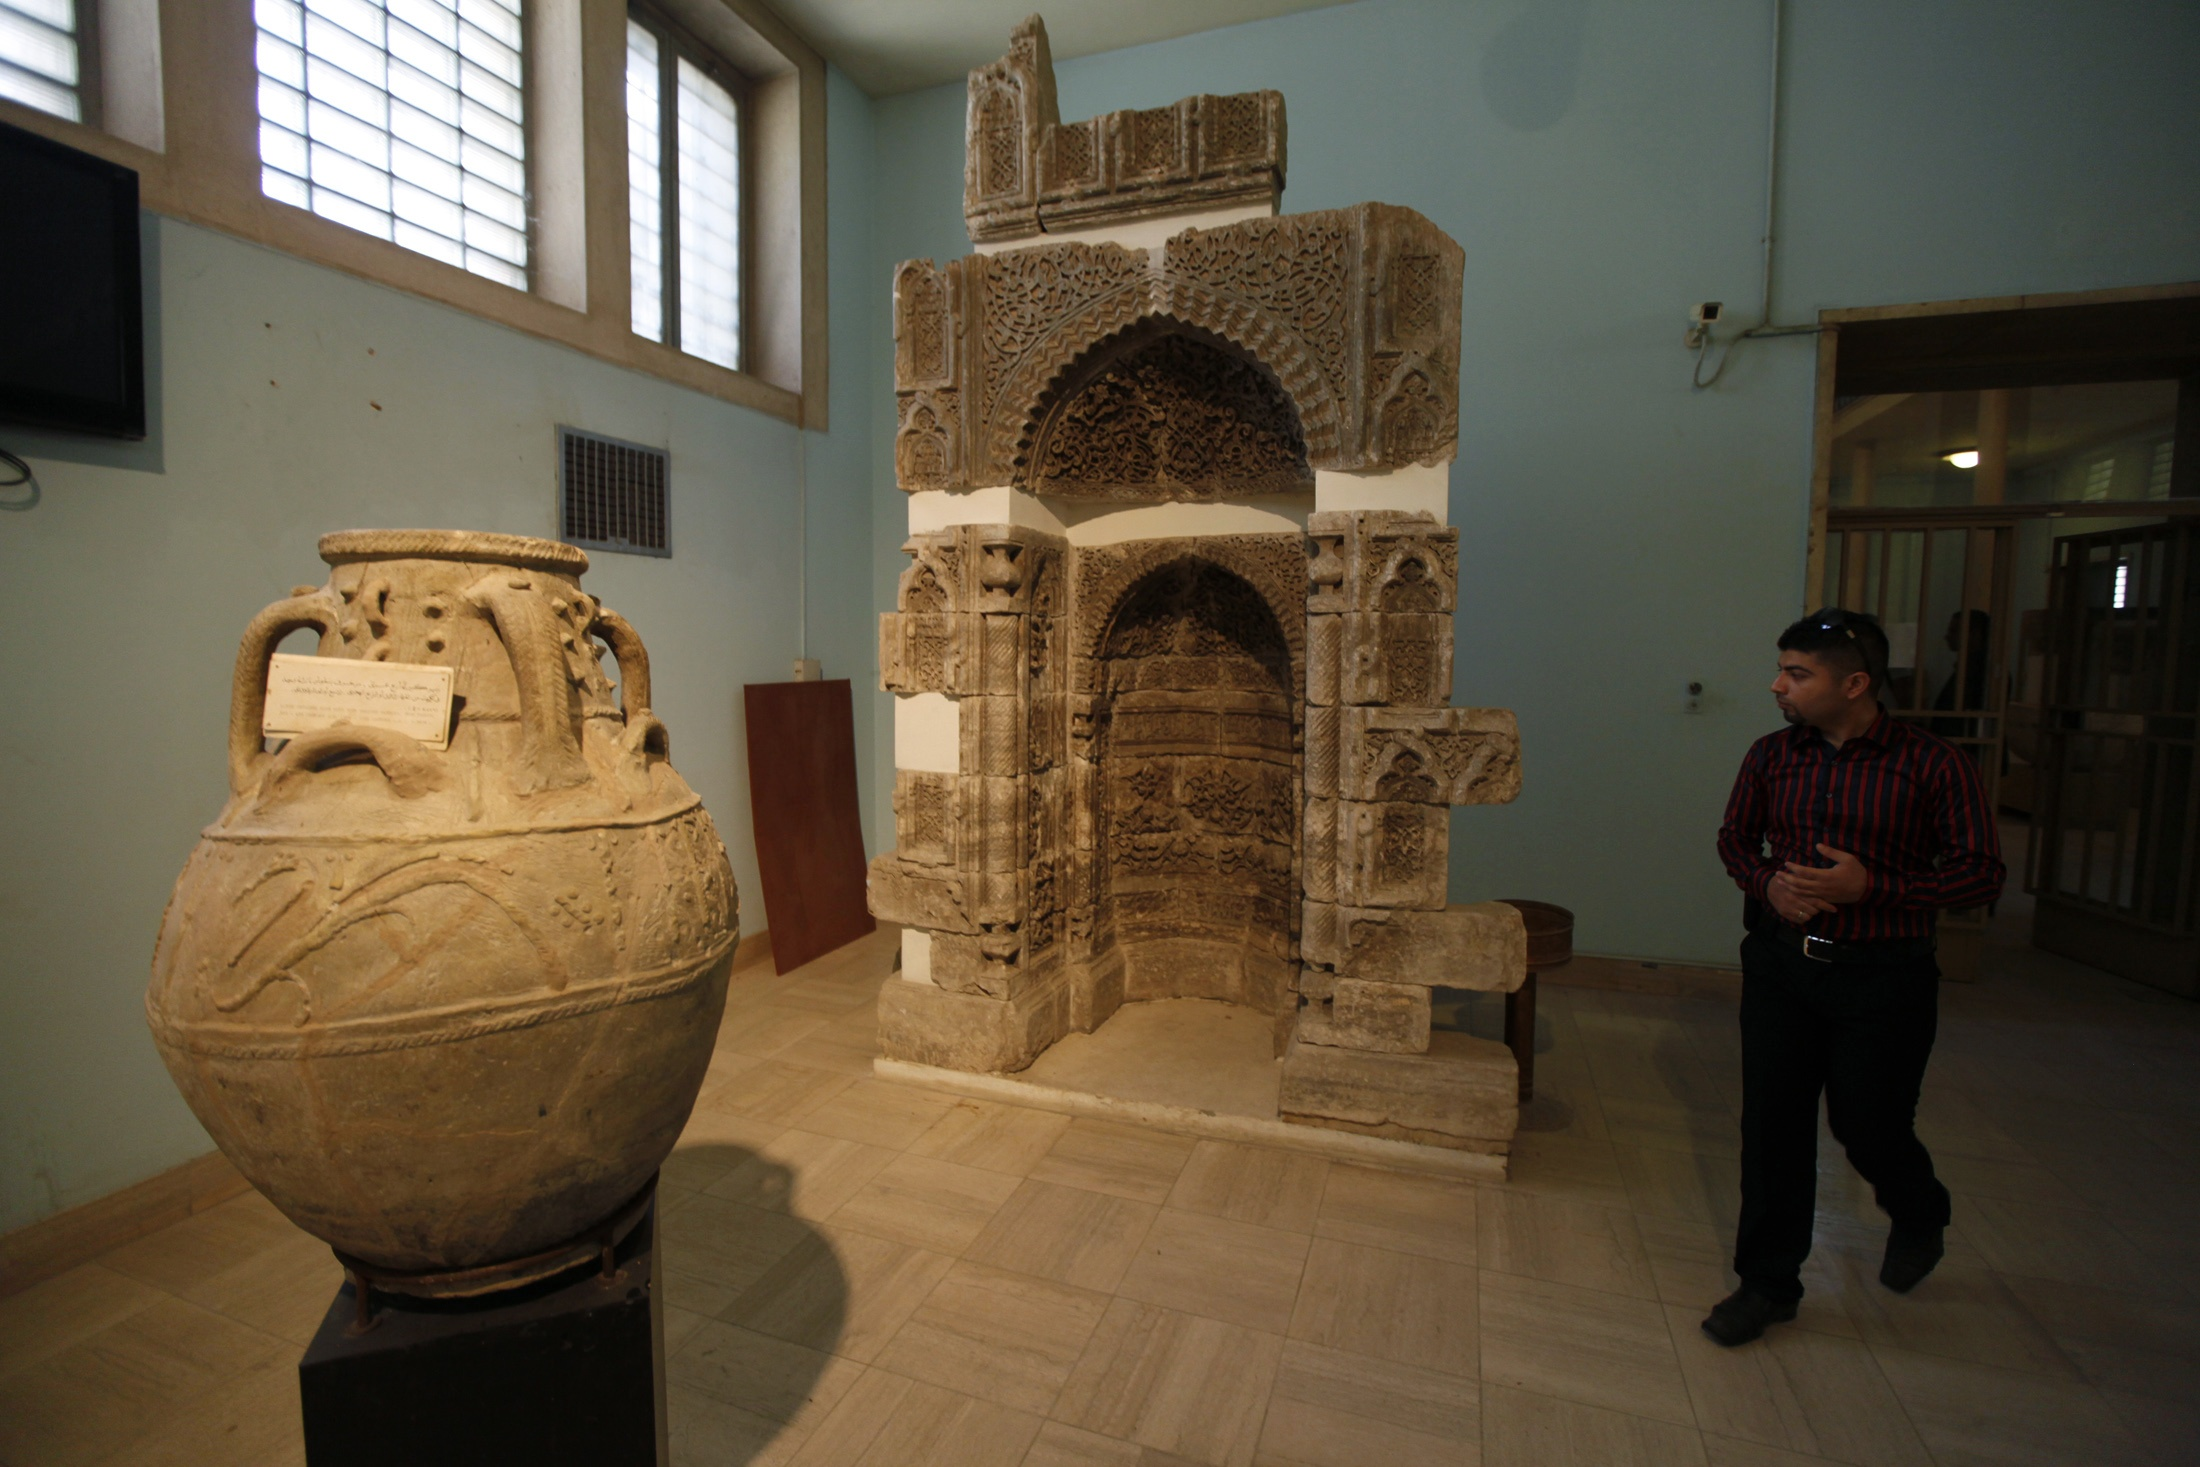 A man walks past artifacts at the National Museum of Iraq in Baghdad.